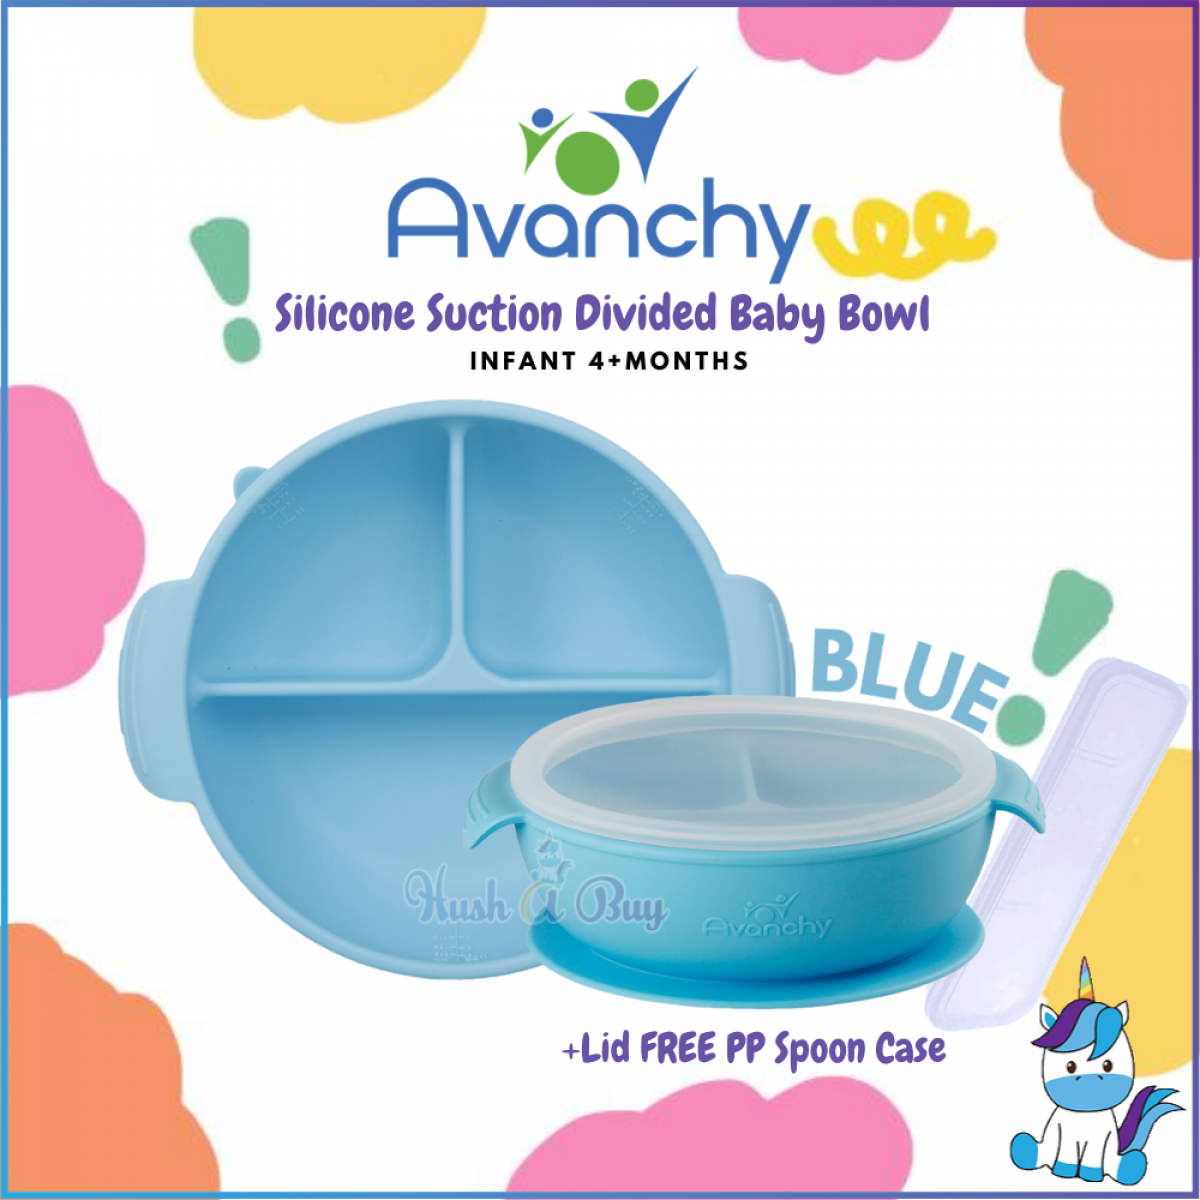 Avanchy Silicone Suction Divided Baby Bowl + Lid FREE PP Spoon Case